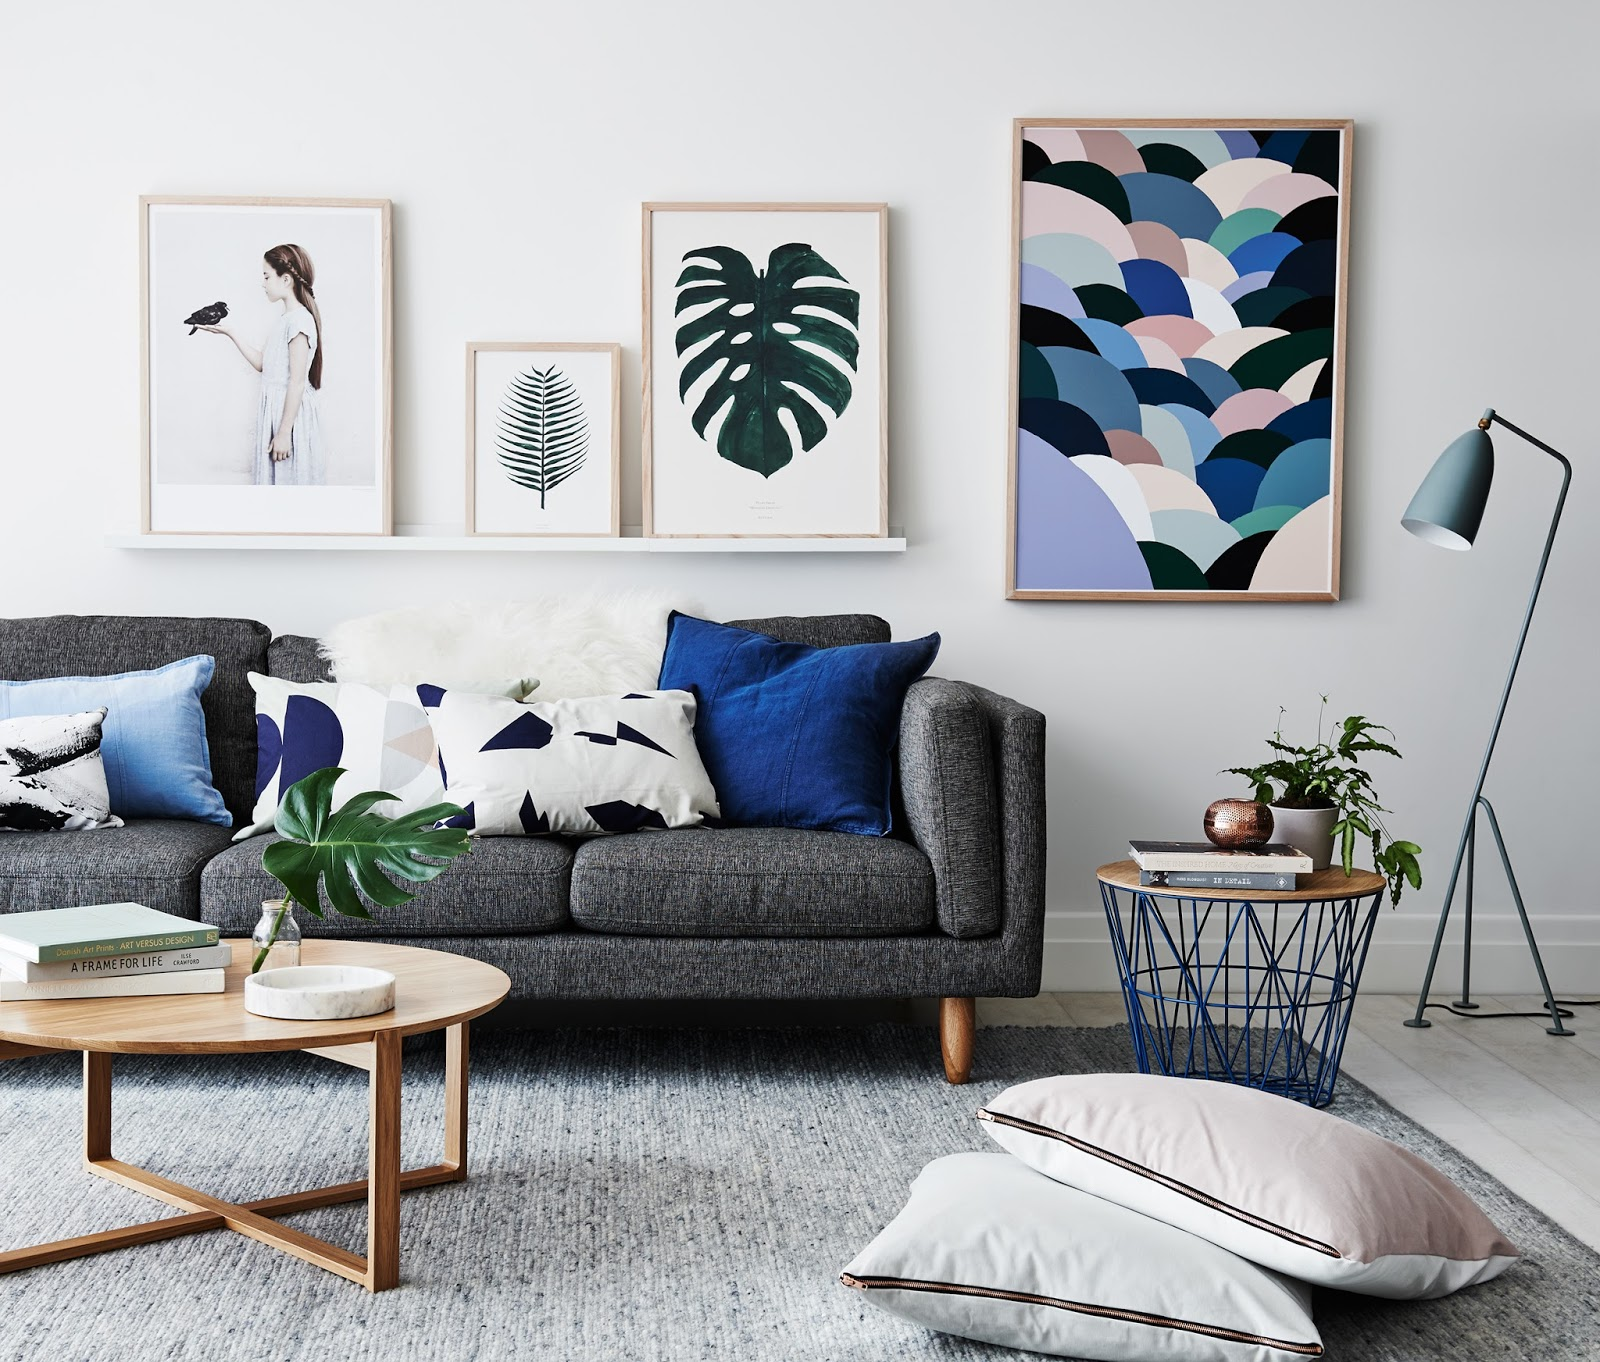 We Found the Scandinavian Living Room Ideas You Were Looking For scandinavian living room We Found the Scandinavian Living Room Ideas You Were Looking For We Found the Scandinavian Living Room Ideas You Were Looking For 3